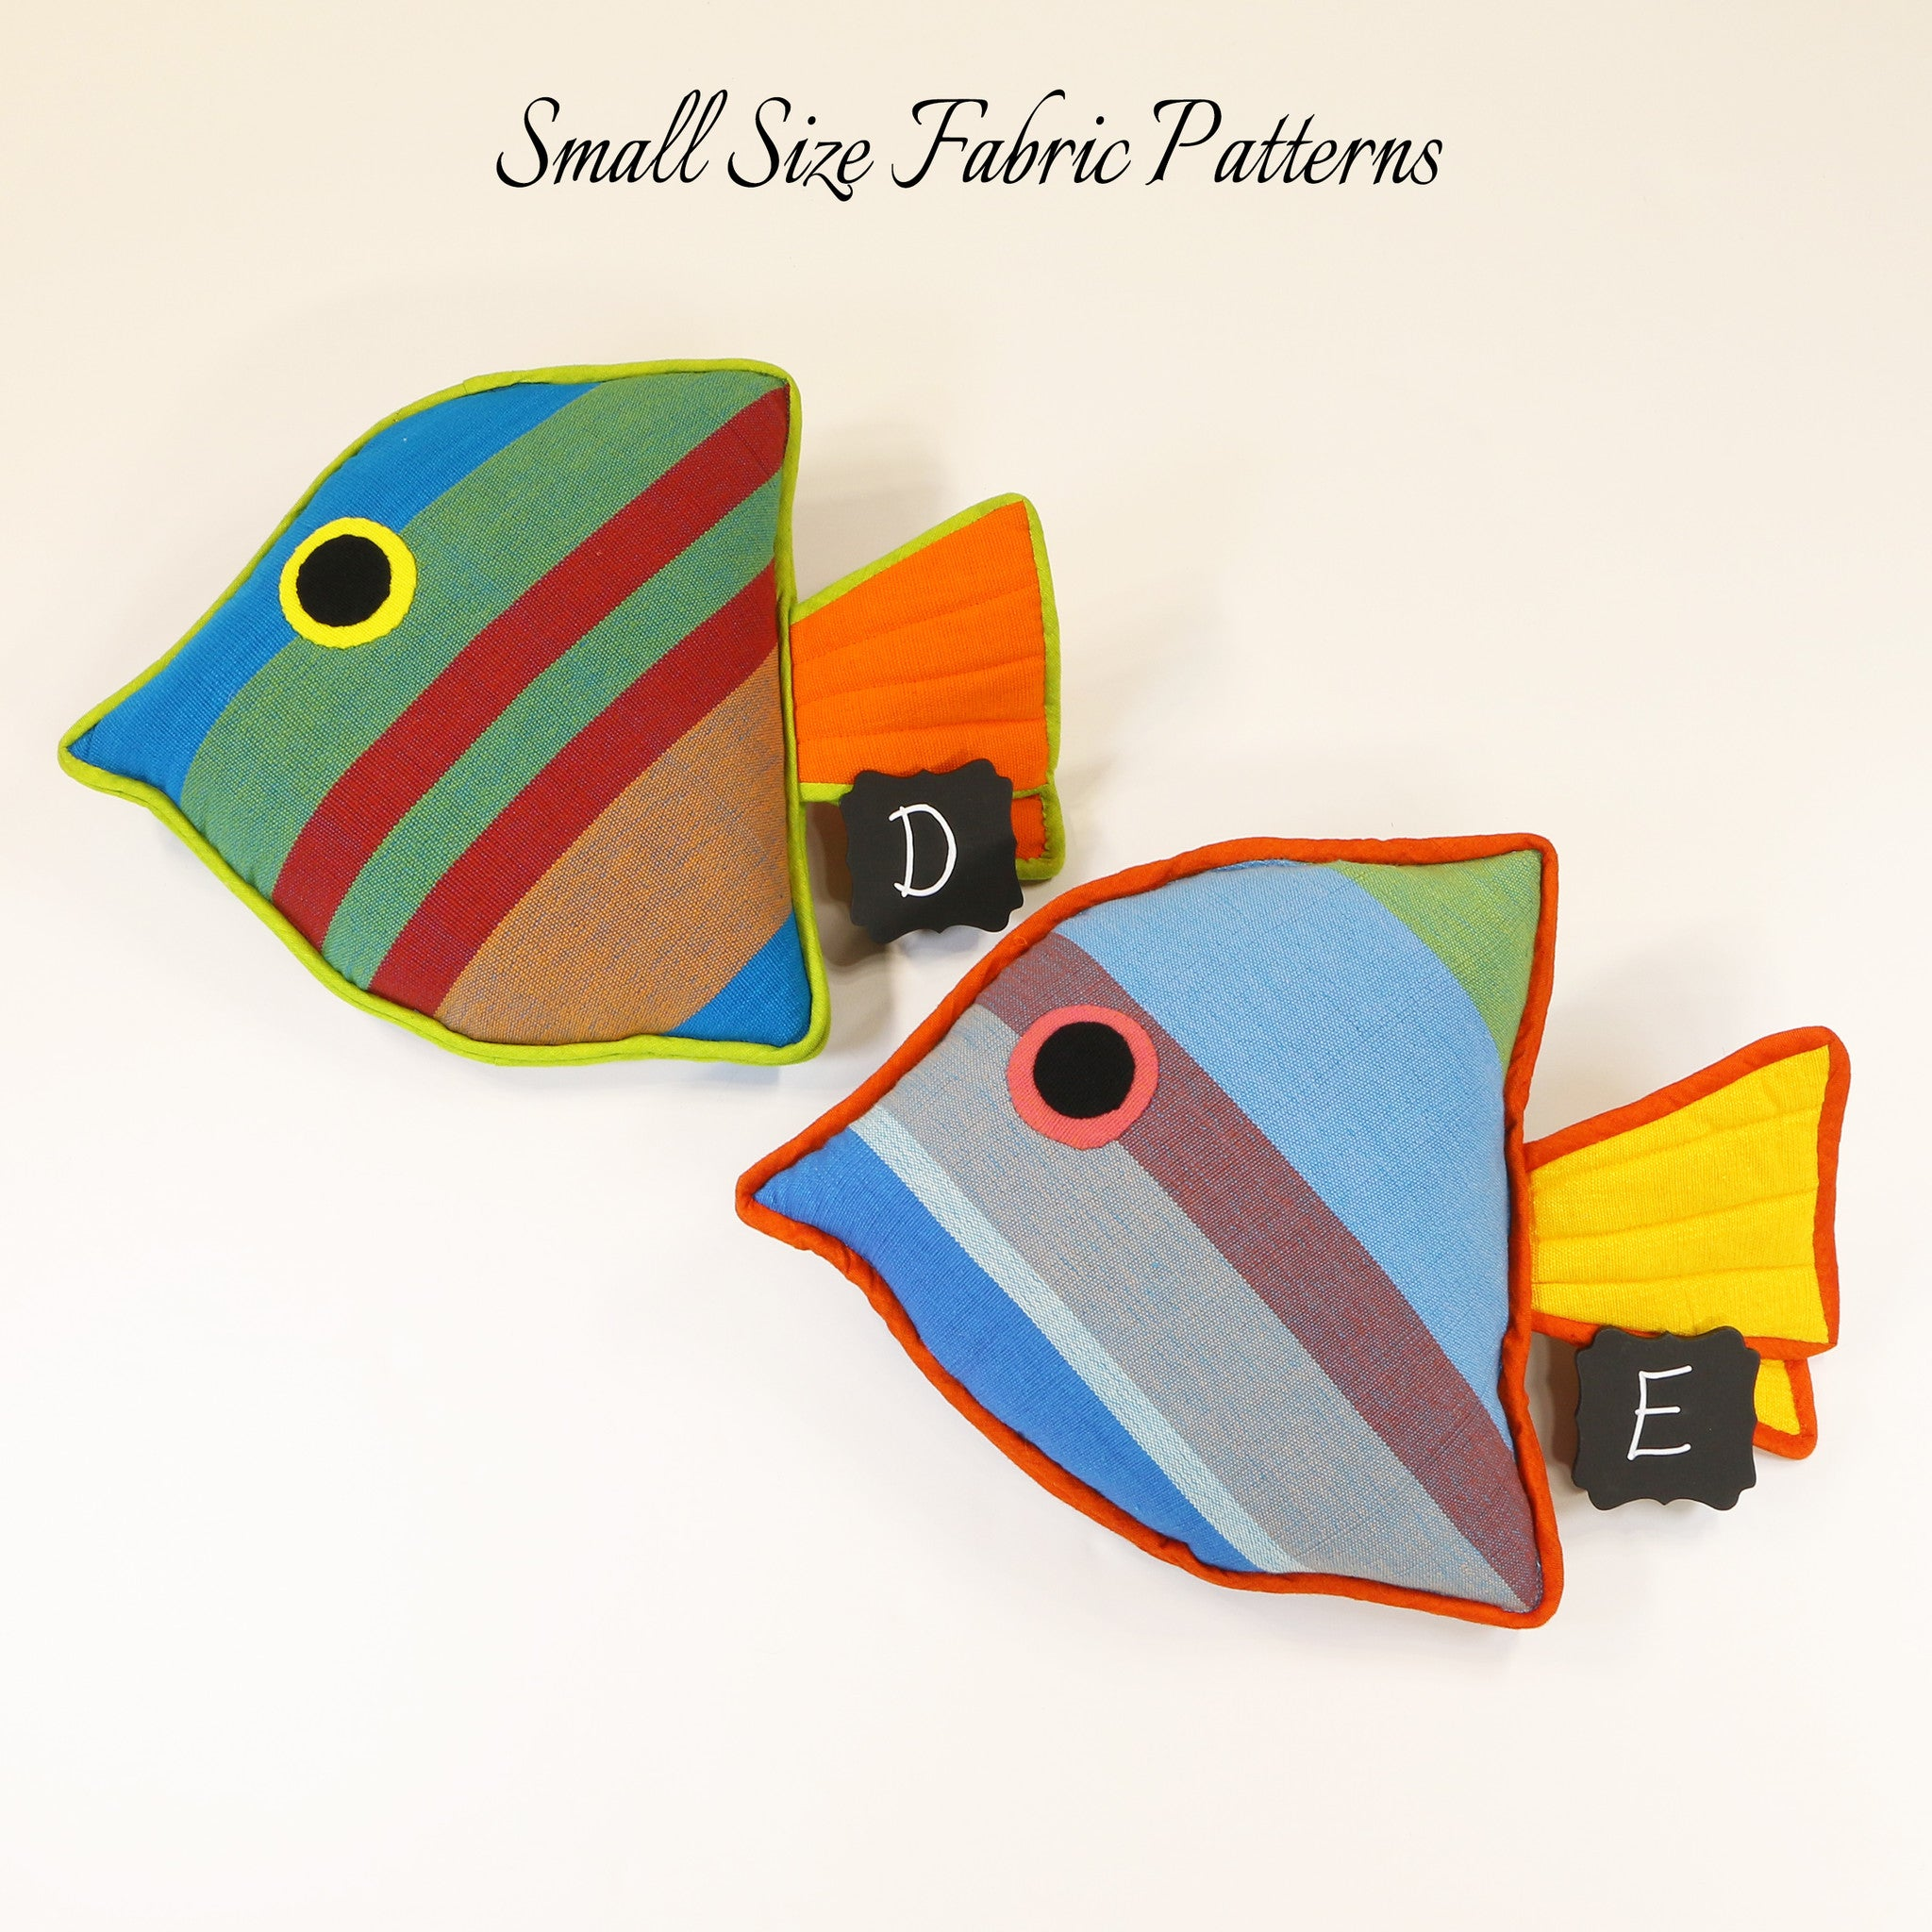 Leroy, the Juvenile Fish – small size fabric patterns shown